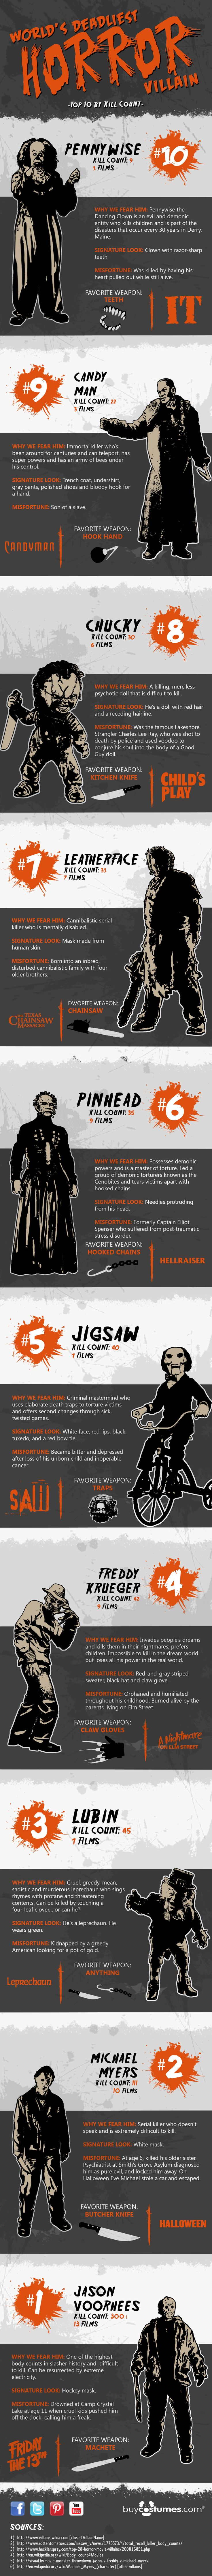 top 10 horror movie villains by kill count click through to the site to pin - Top 10 Scary Halloween Movies